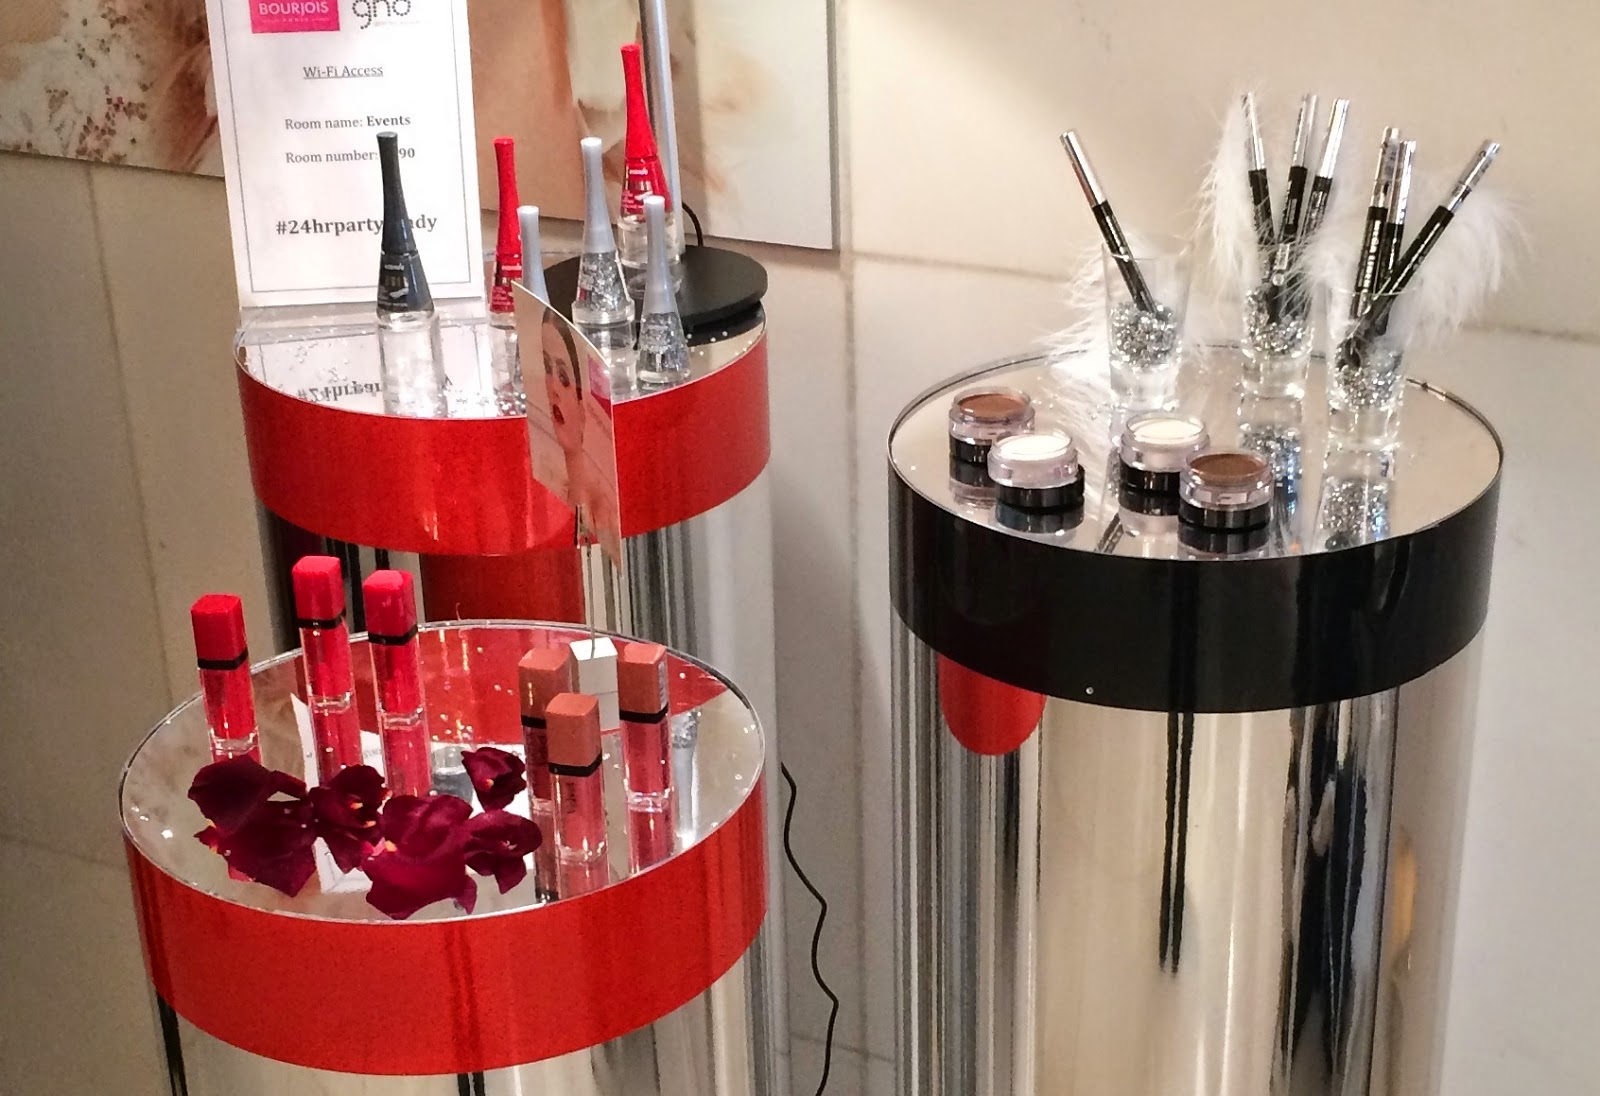 bourjois-ghd-london-event-autumn-winter-2014-new-releases